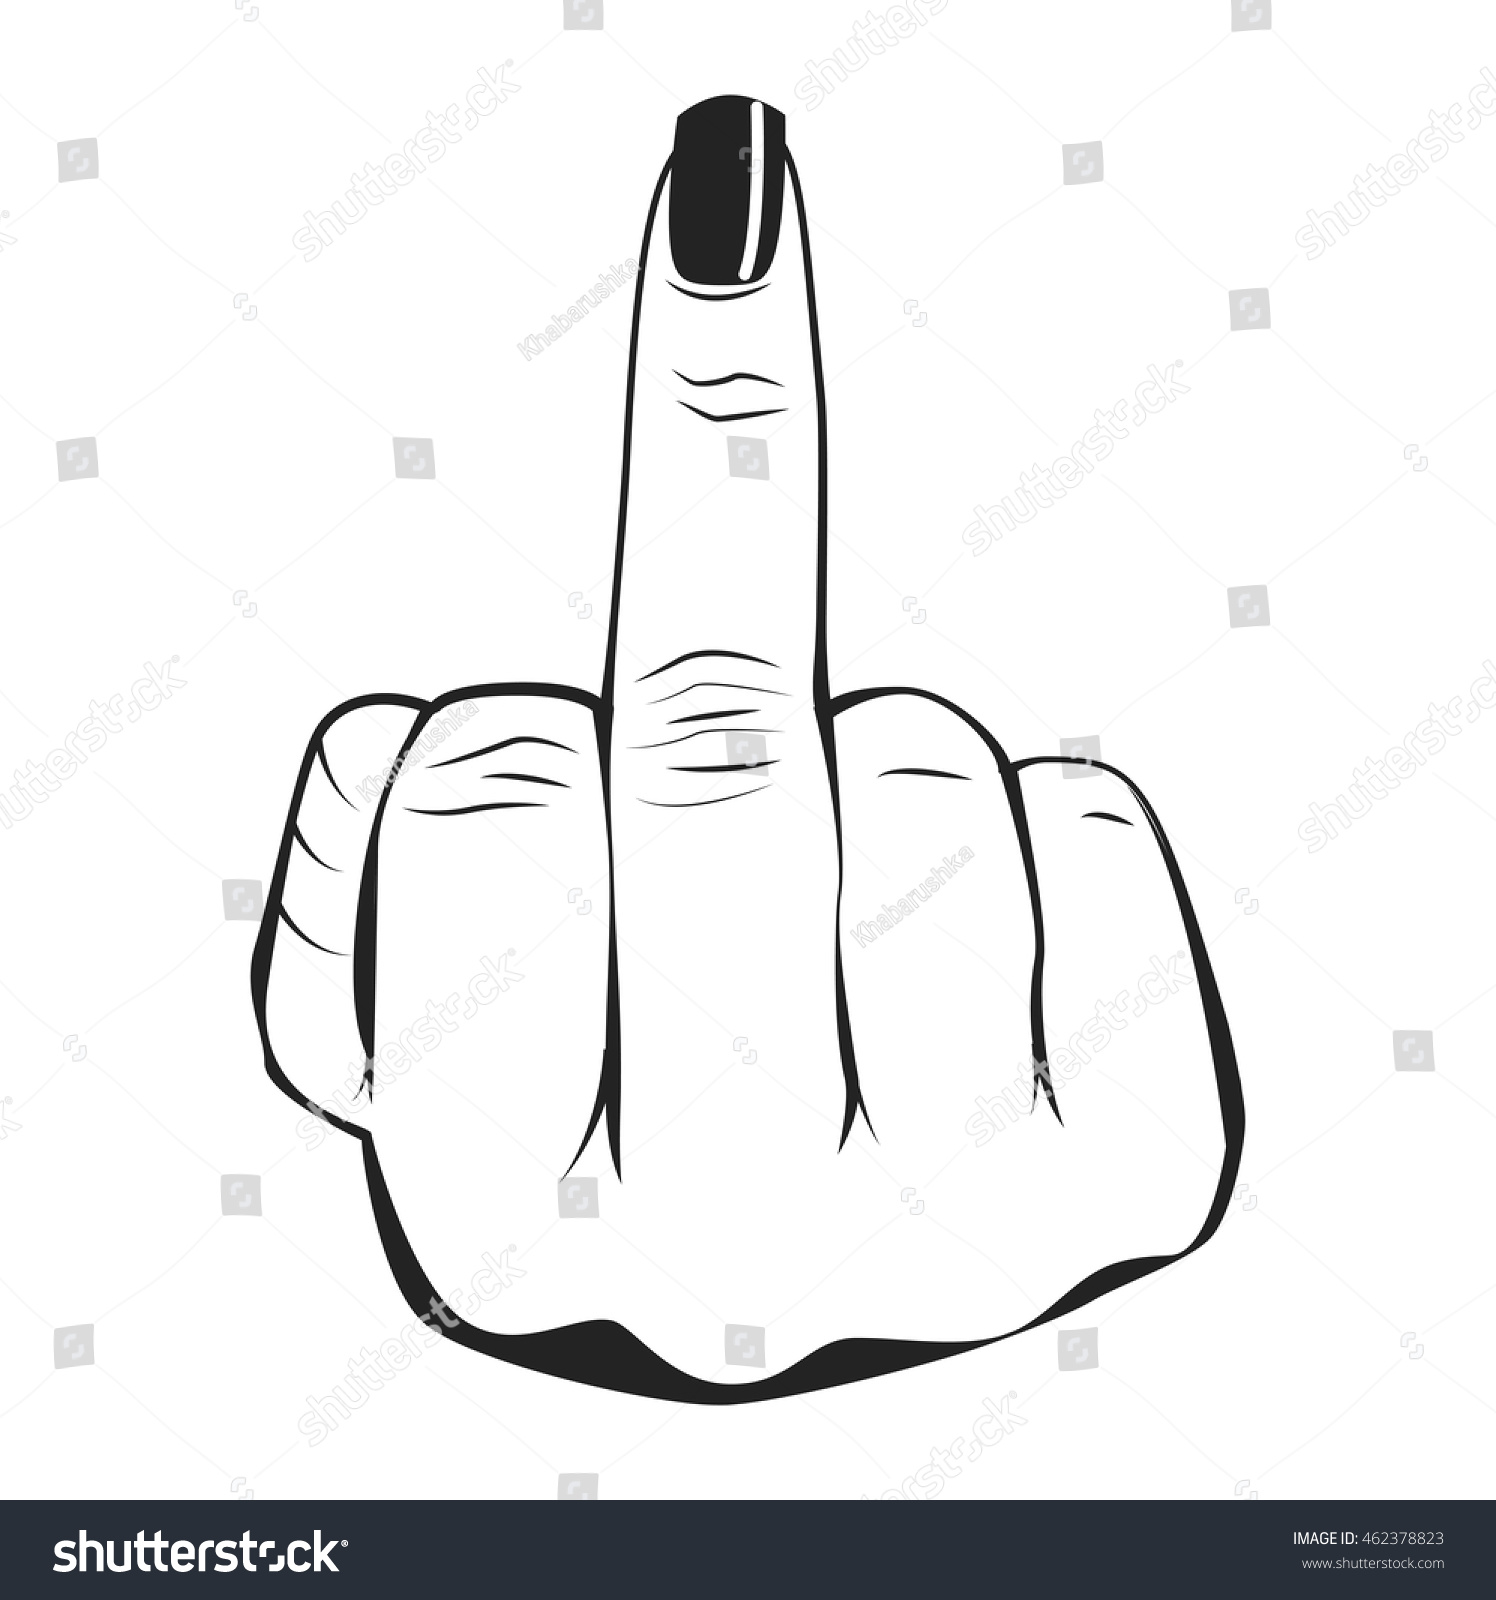 middle finger female hand women nail stock vector hd royalty free rh shutterstock com middle finger vector art middle finger vector image